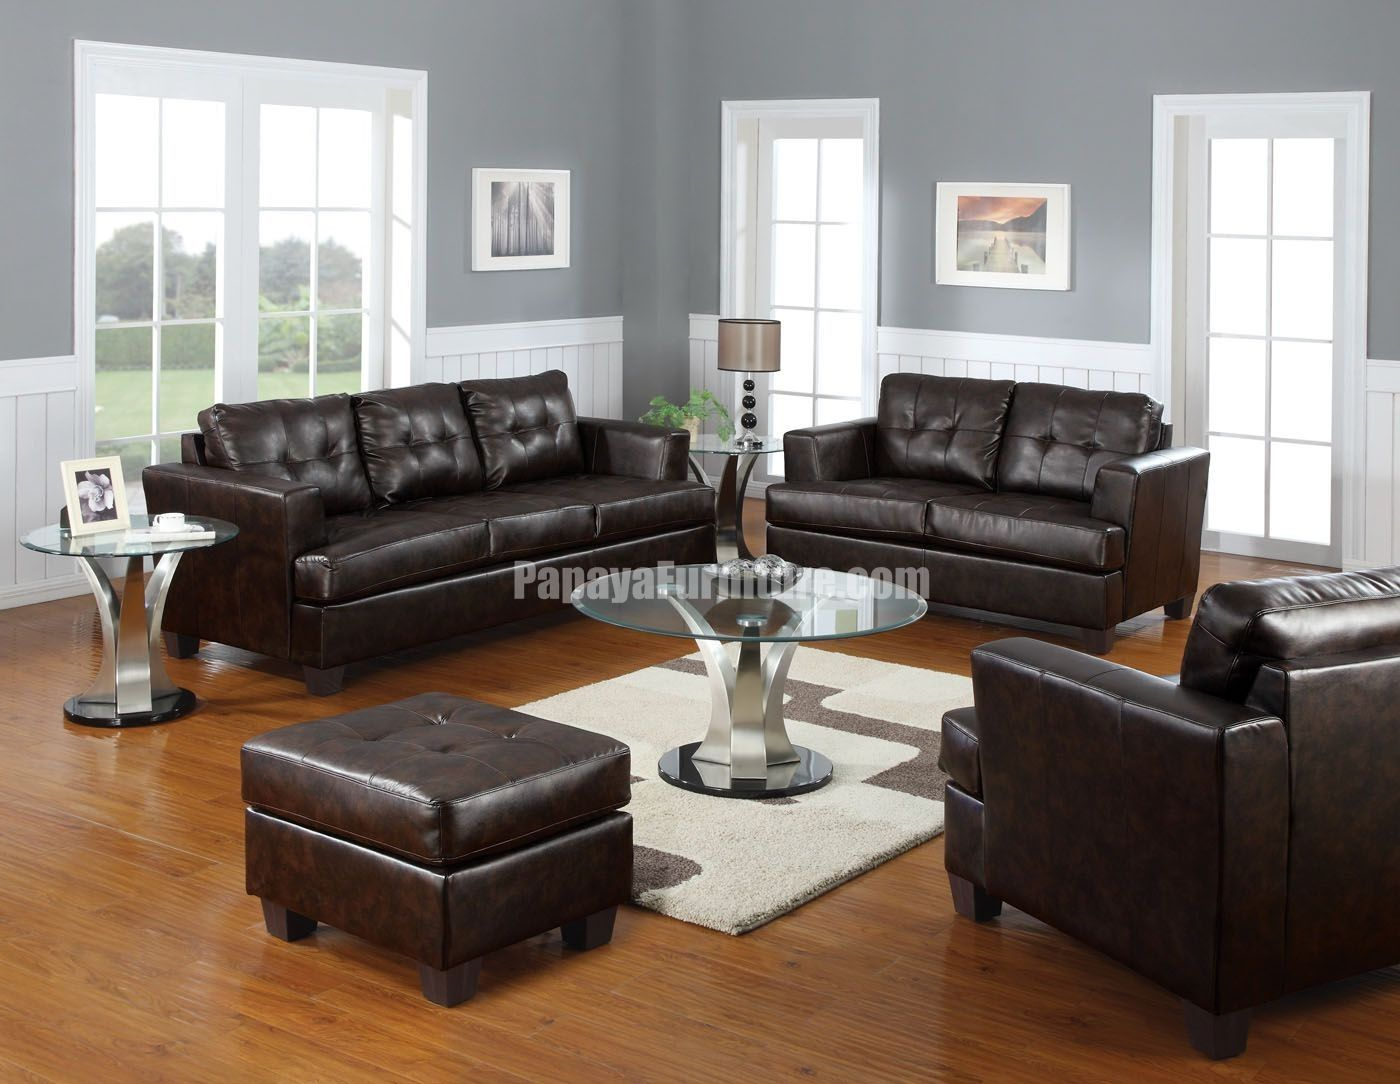 Dark Brown Couch Decorating Ideas